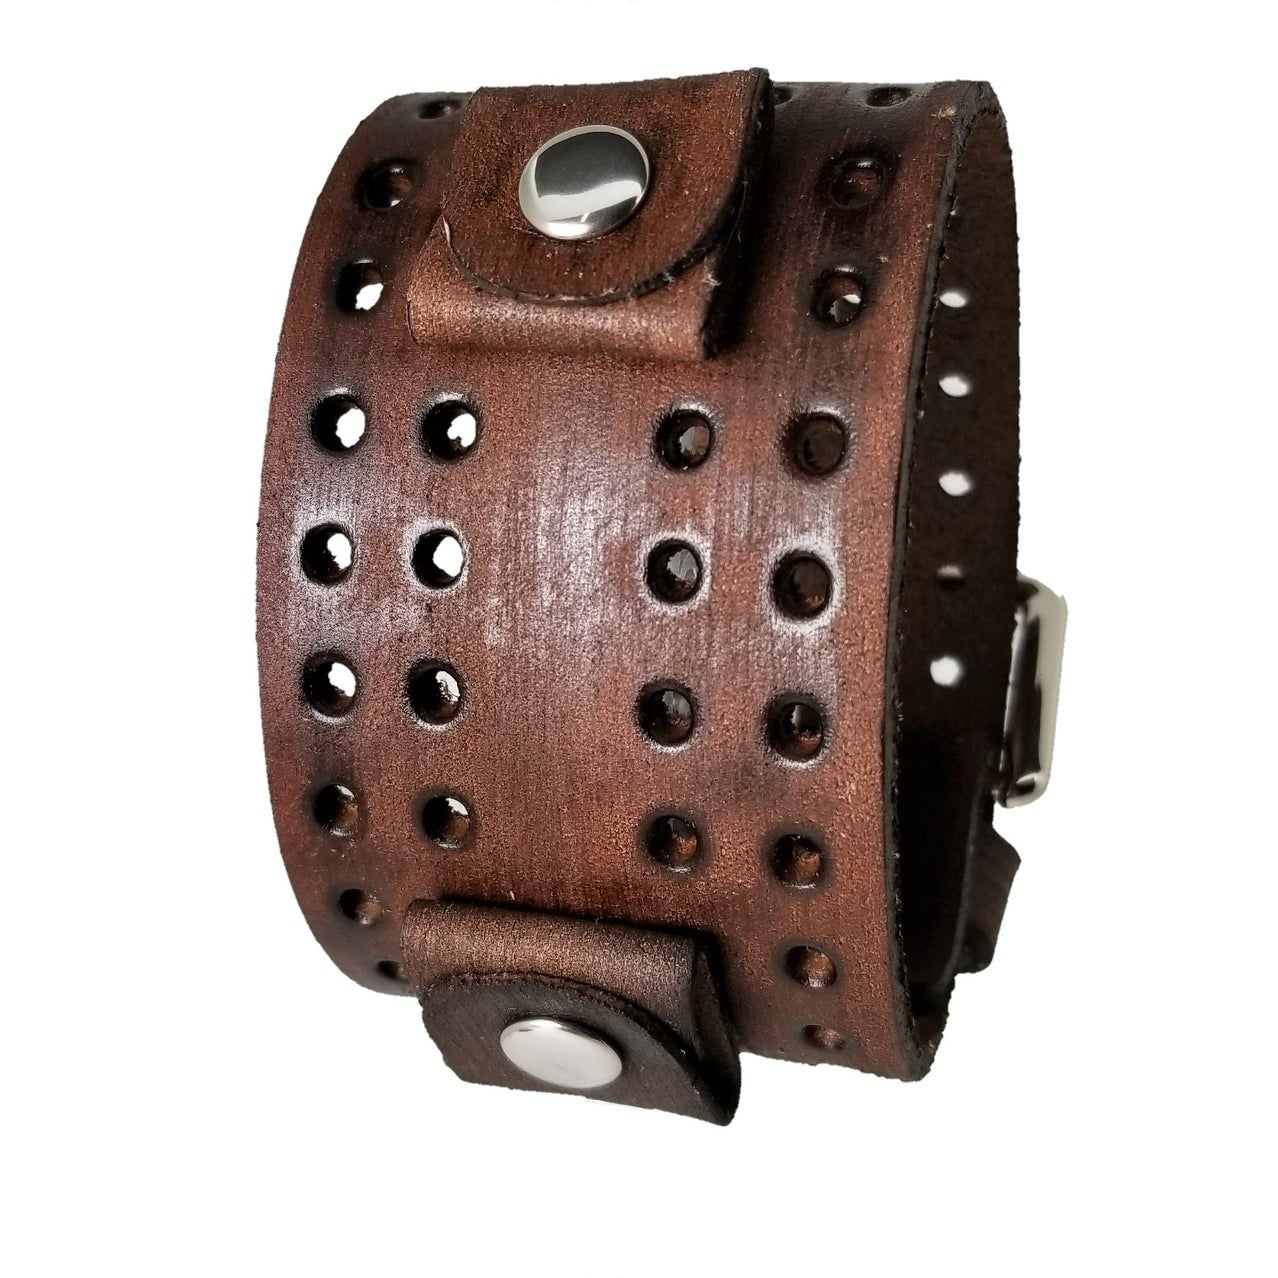 694a28bbf Shop Nemesis VLH-B 24mm Lug Width Wide Faded Brown Perforated Leather Cuff  Watch Band - On Sale - Free Shipping On Orders Over $45 - Overstock -  27875586